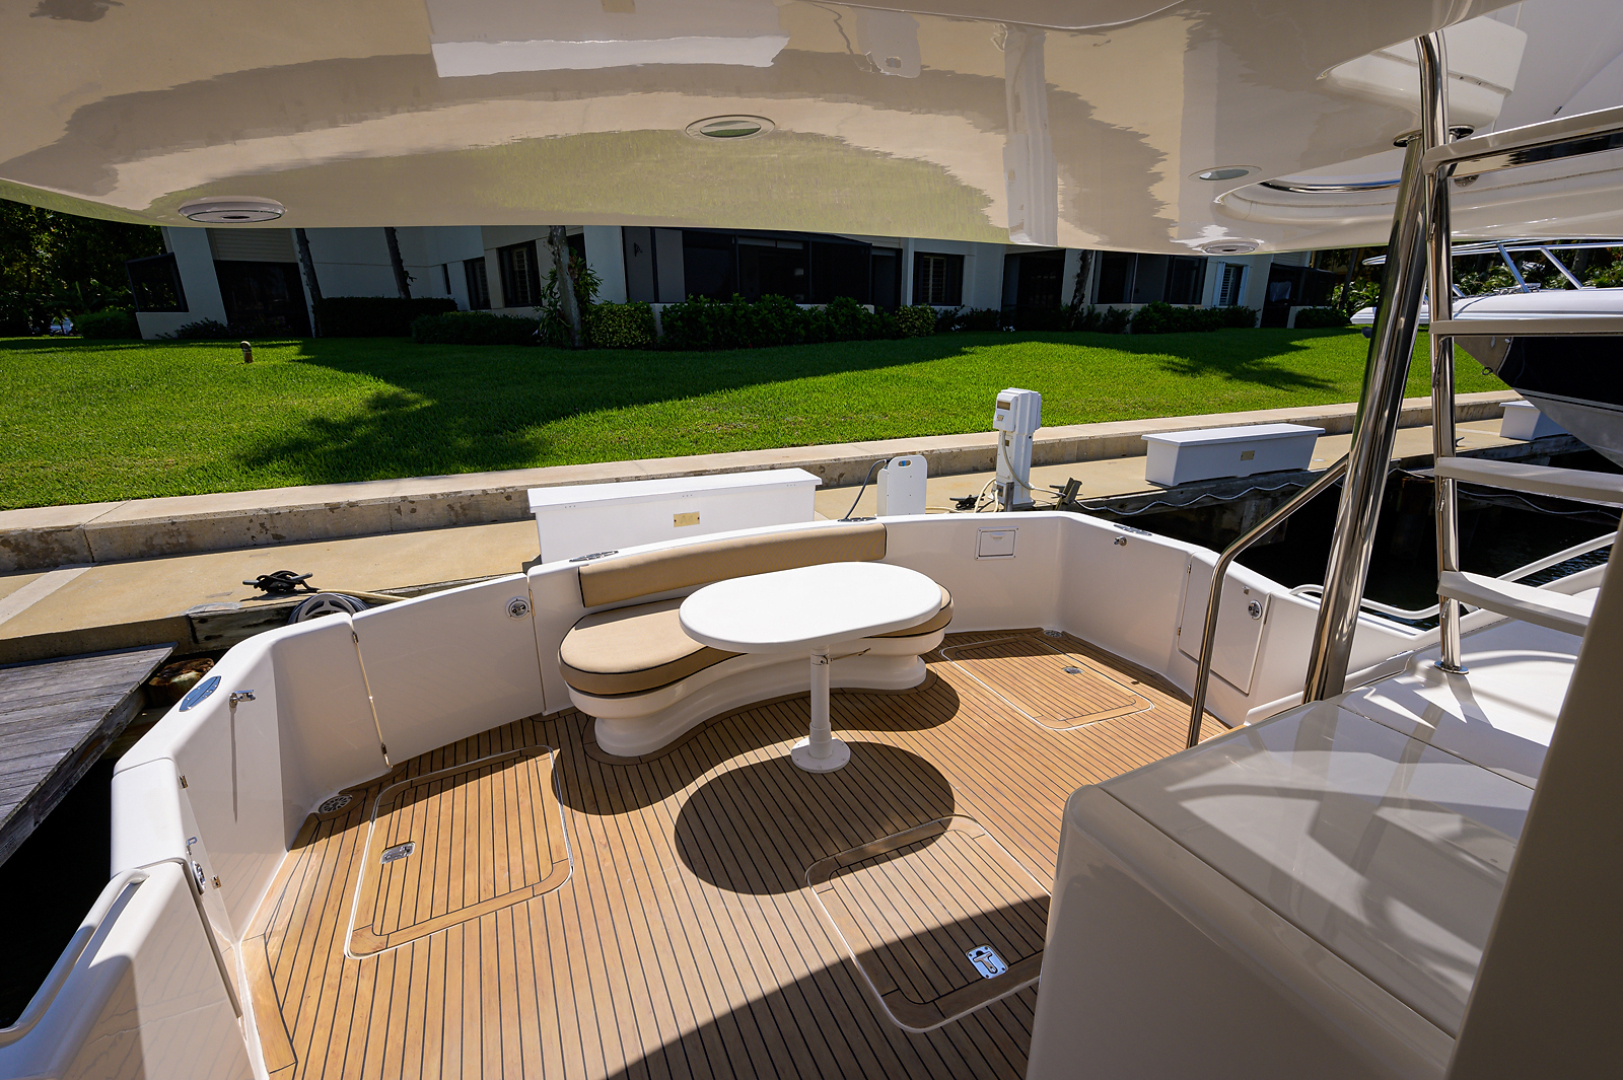 Ocean Yachts-Odyssey 2005-MISS JAN Palm Beach Gardens-Florida-United States-Cockpit-1387039 | Thumbnail